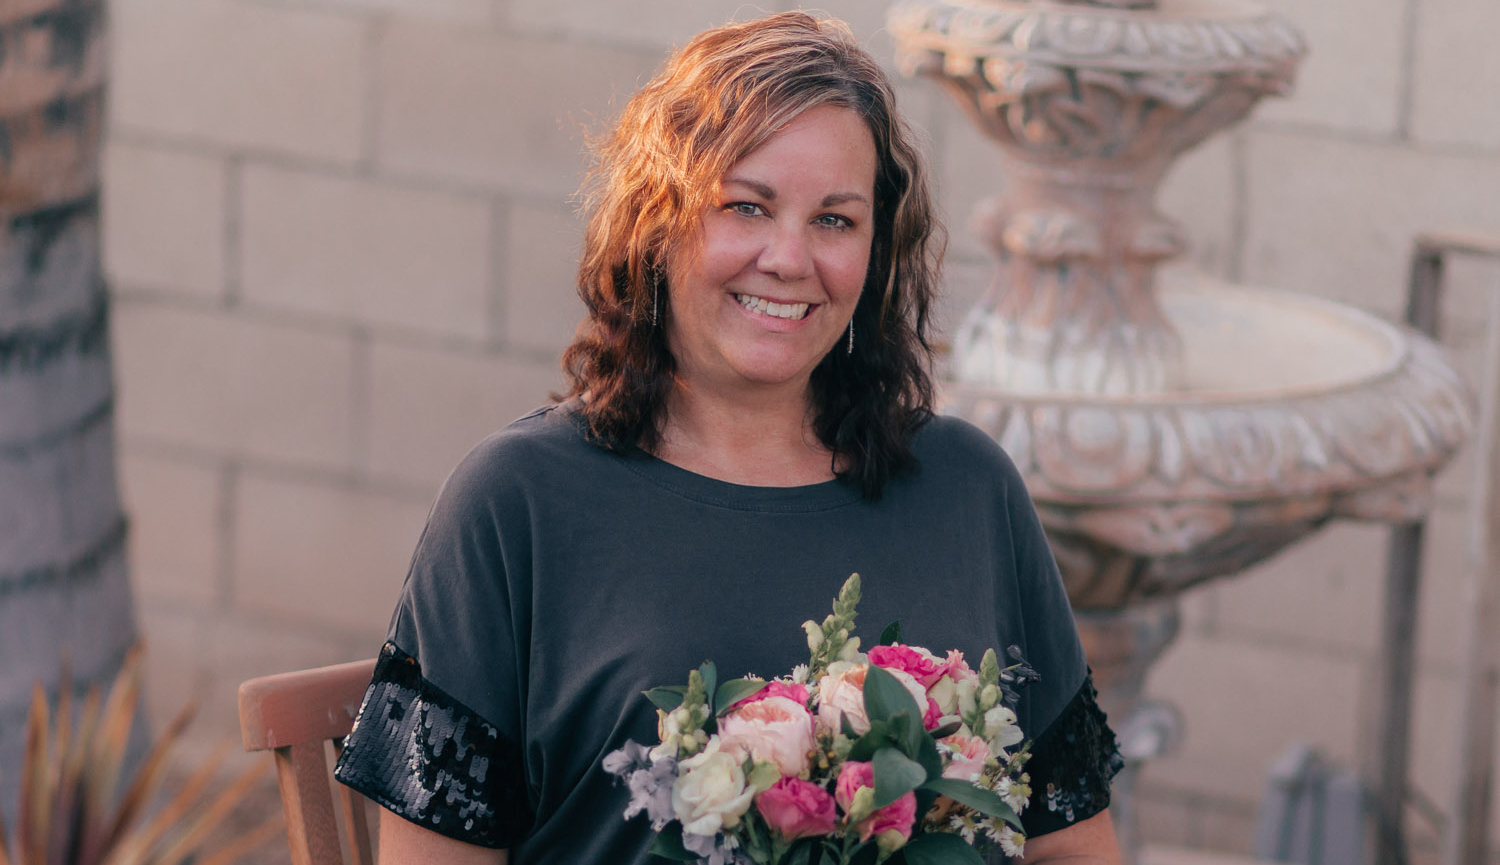 A photo of a woman holding a floral bouquet, the inspiration behind the Breast Cancer Awareness Collection